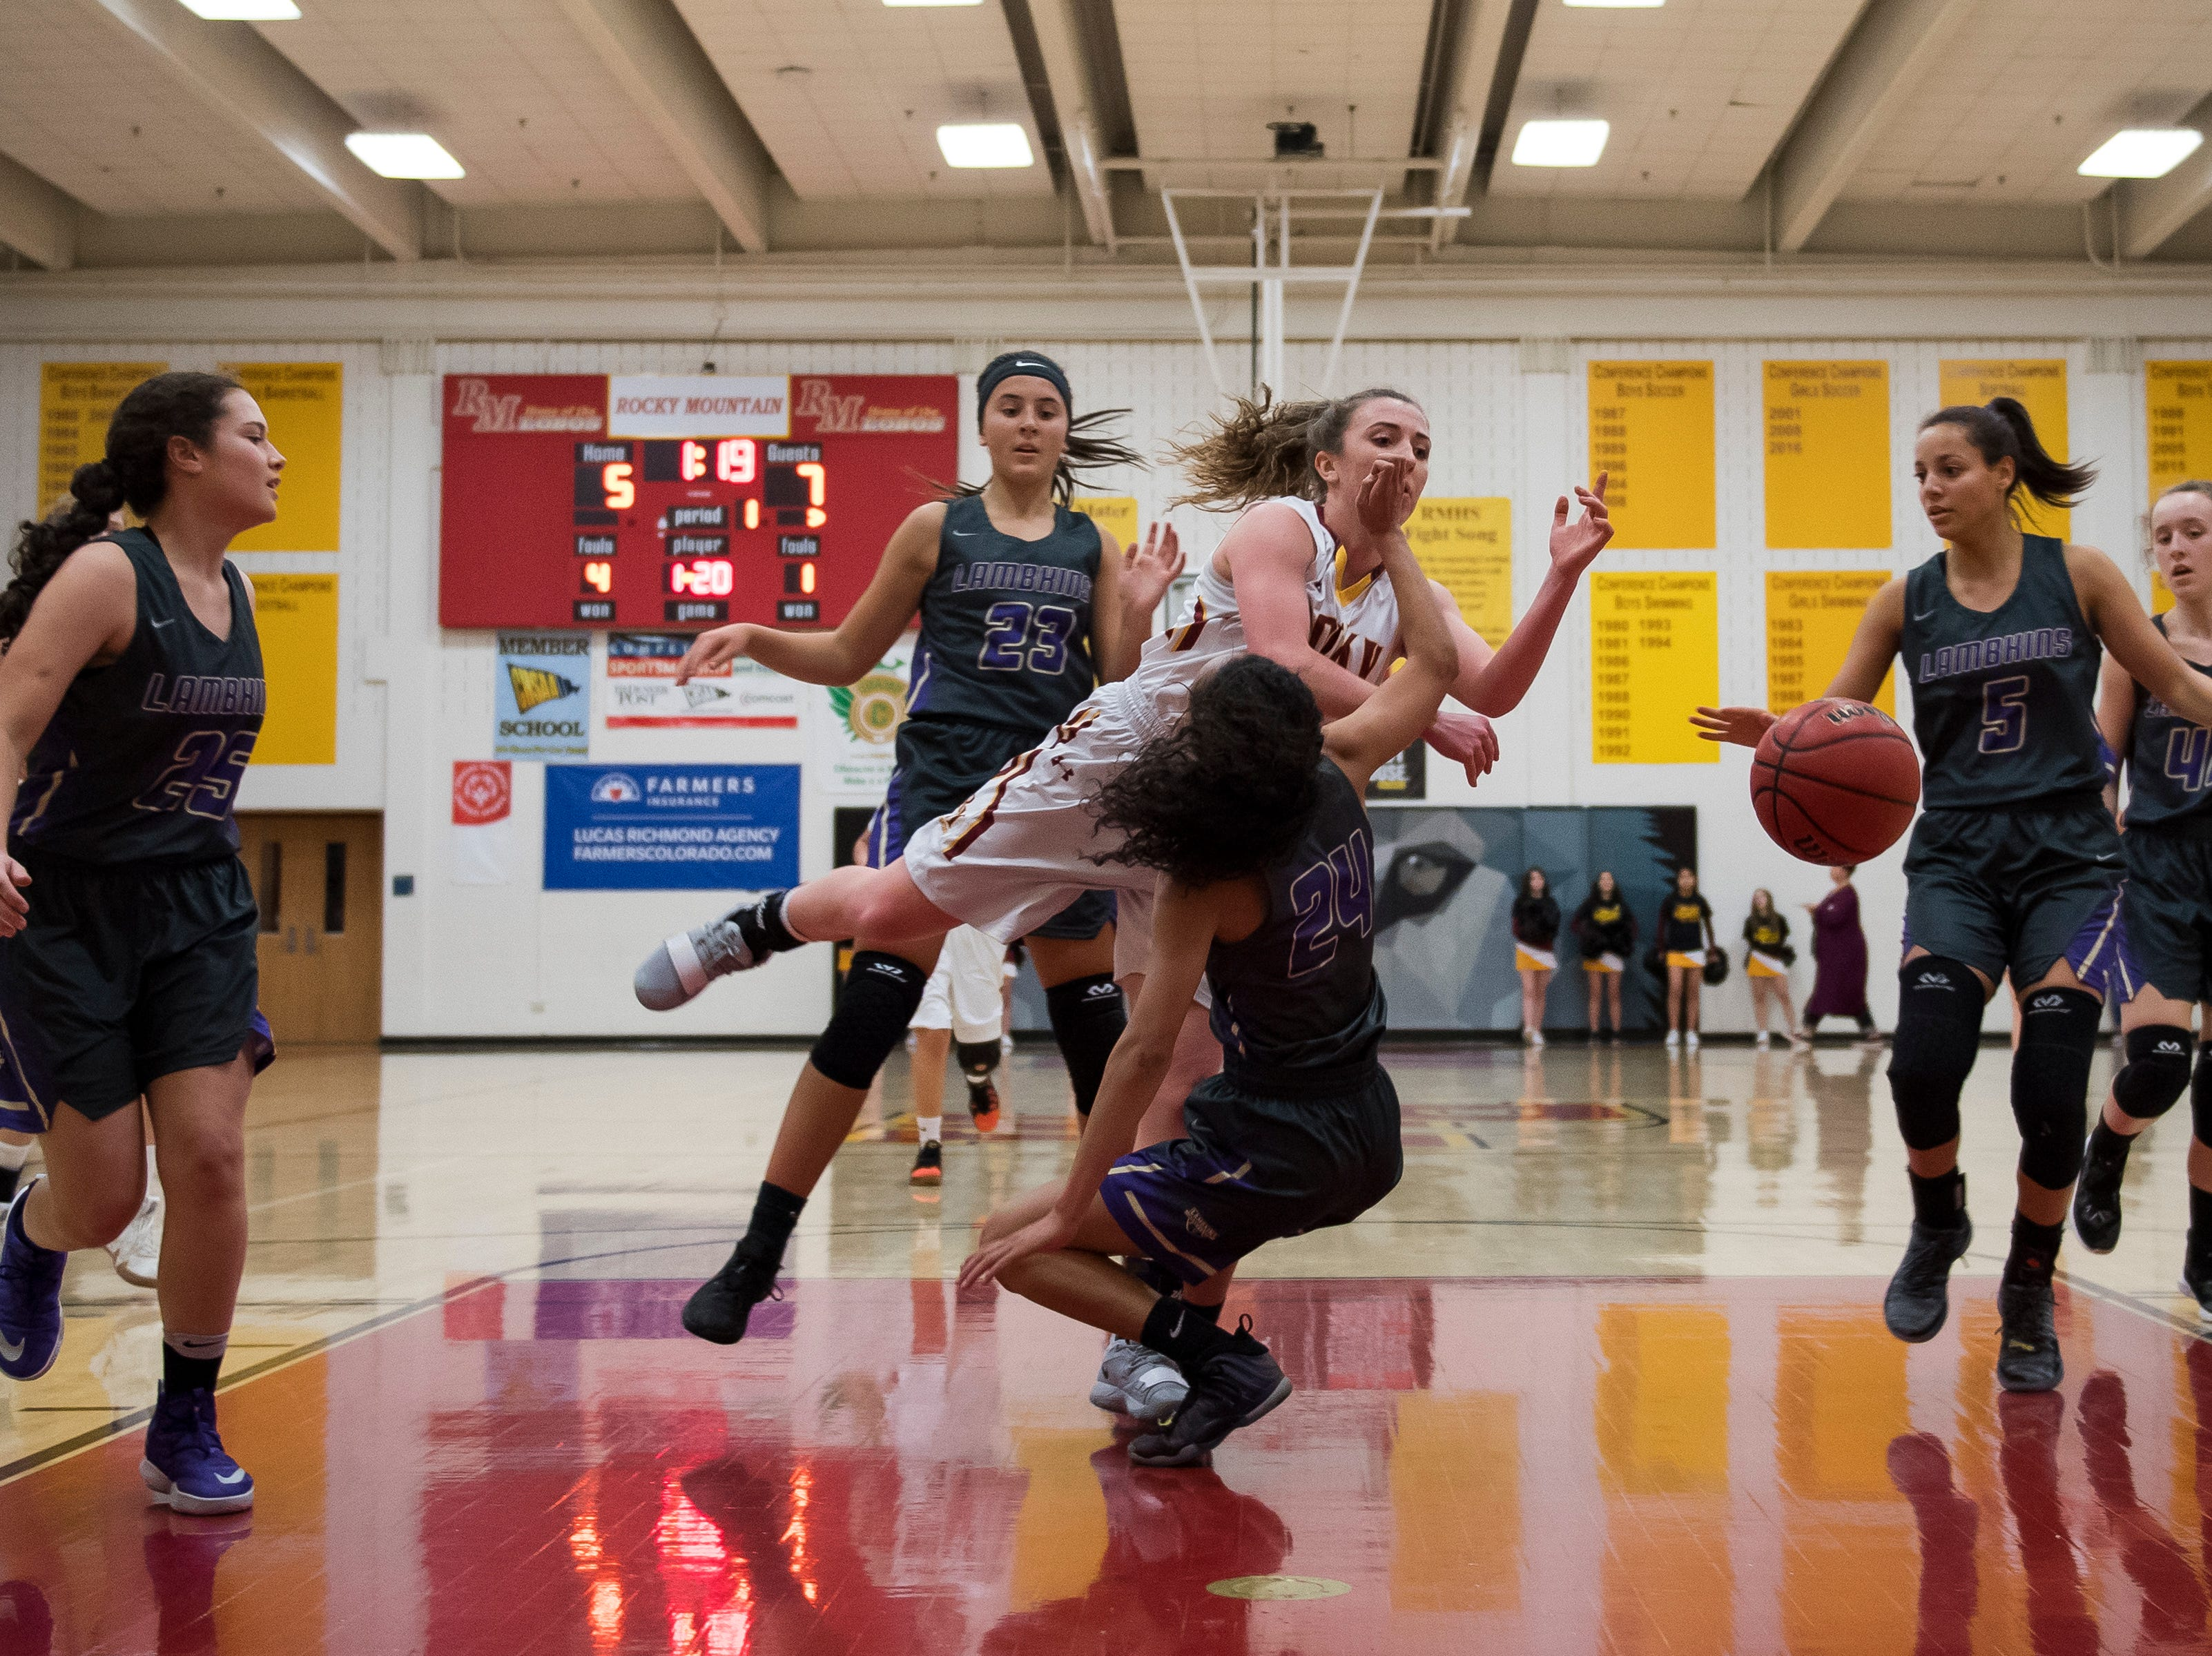 Rocky Mountain High School senior Mikayla Eccher (24) fouls out against Fort Collins High School senior Isabel Layne (24) on Friday, Jan. 18, 2019, at Rocky Mountain High School in Fort Collins, Colo.